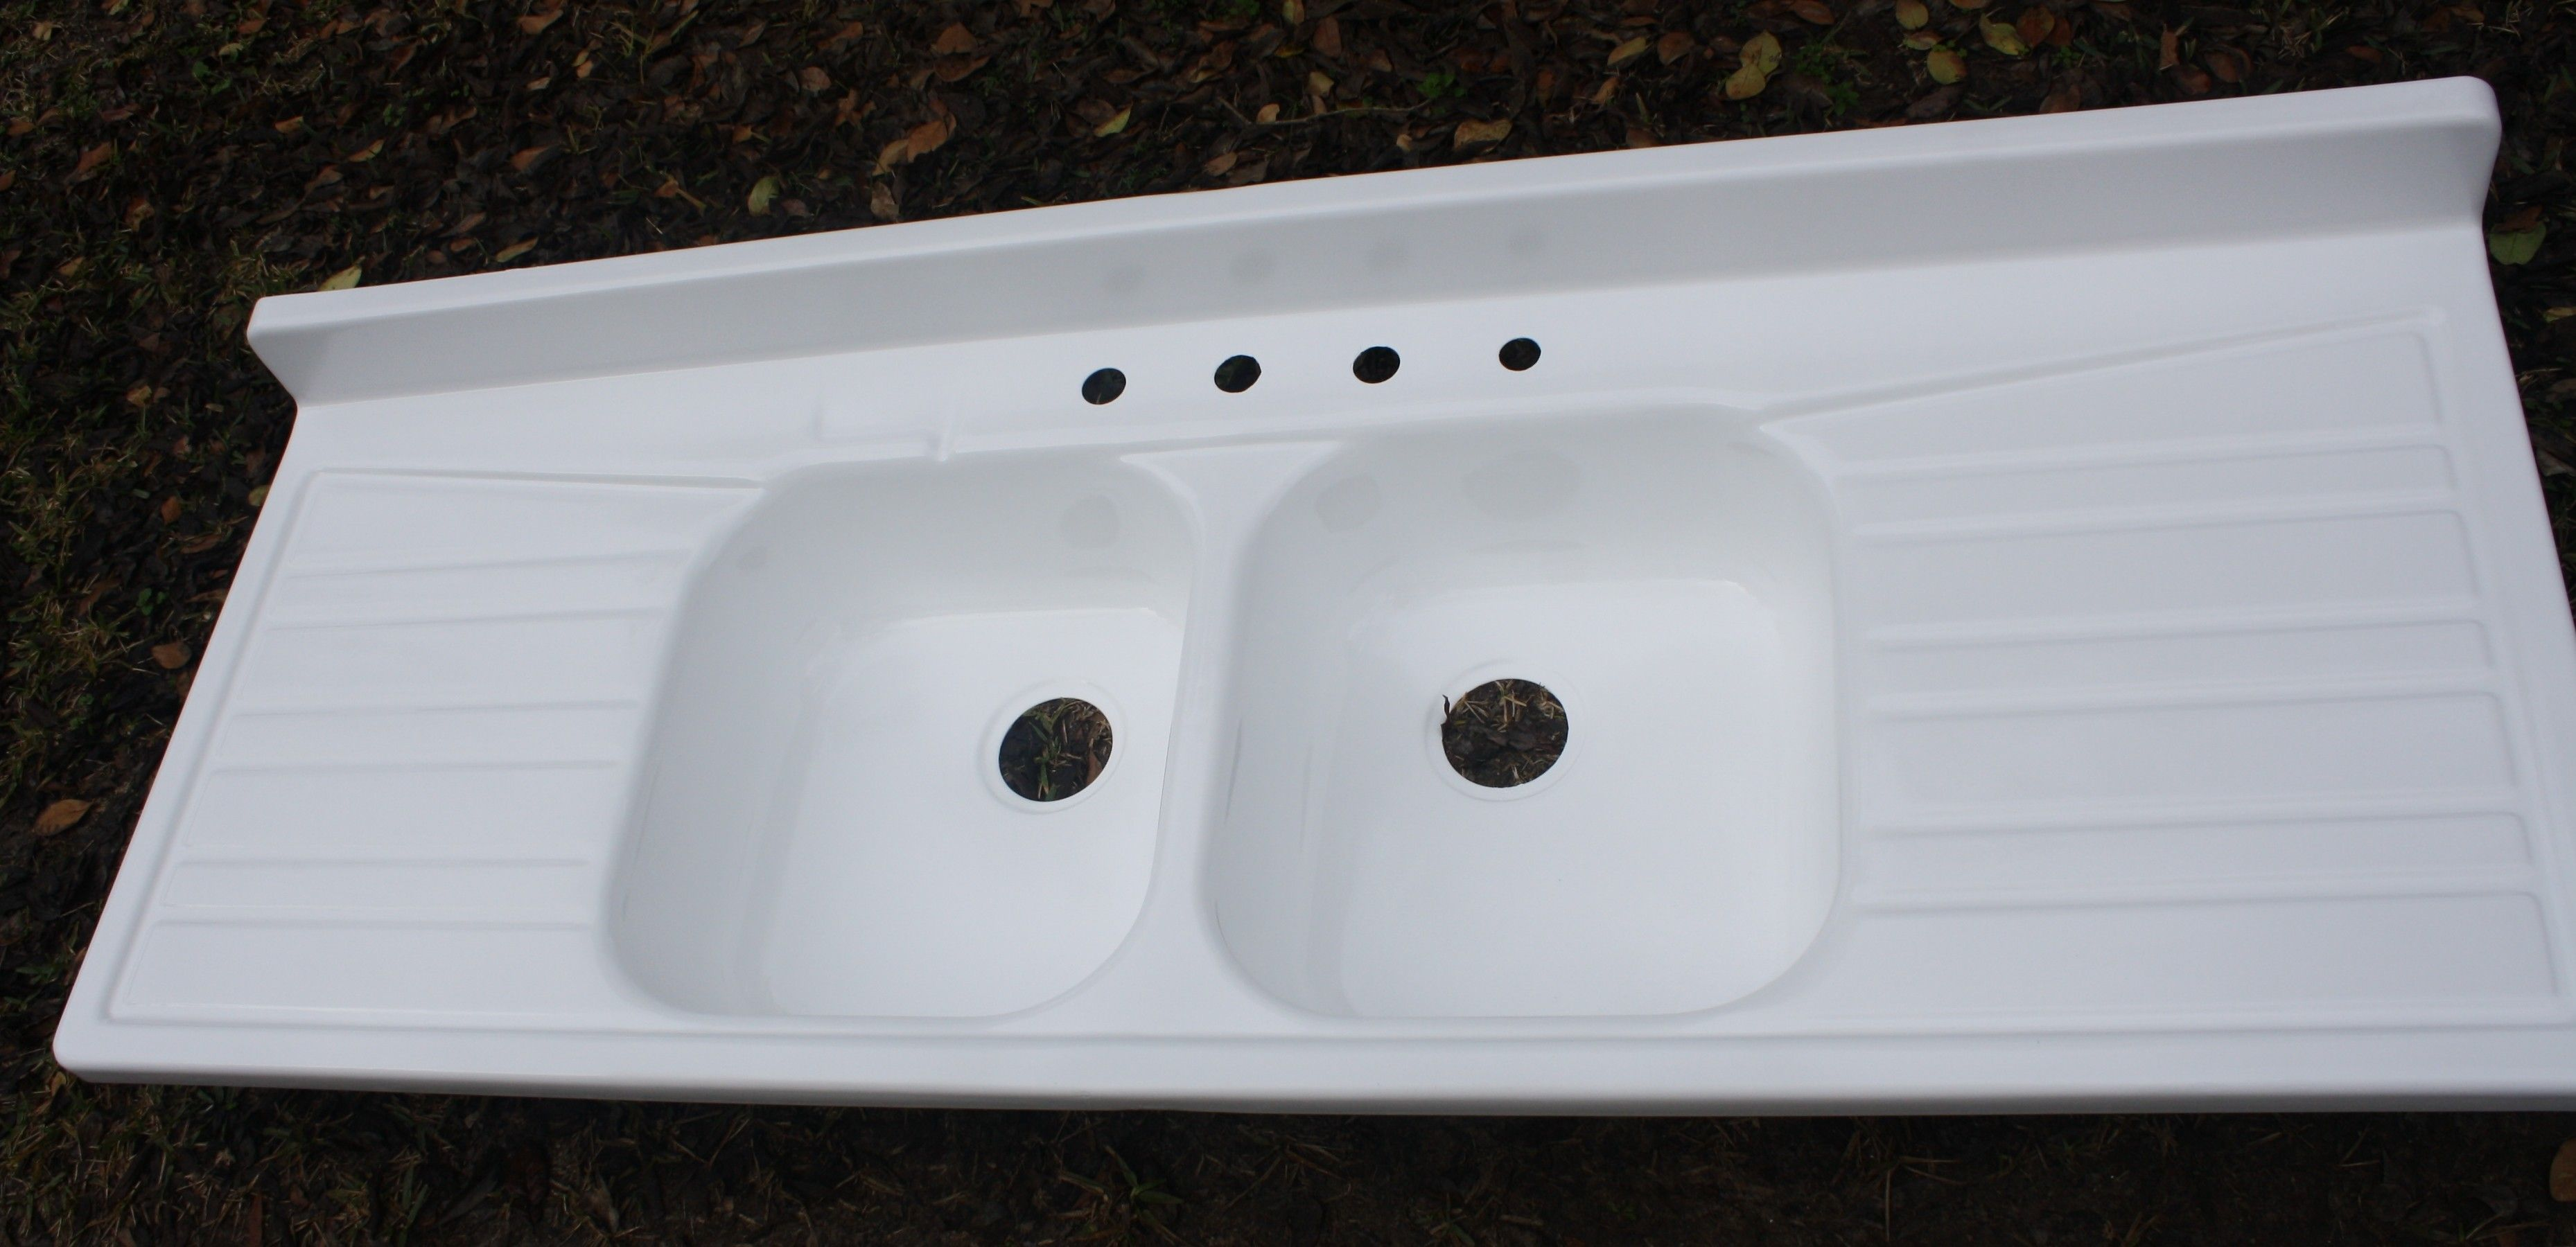 large ceramic or enameled sinks with drain board 1950's